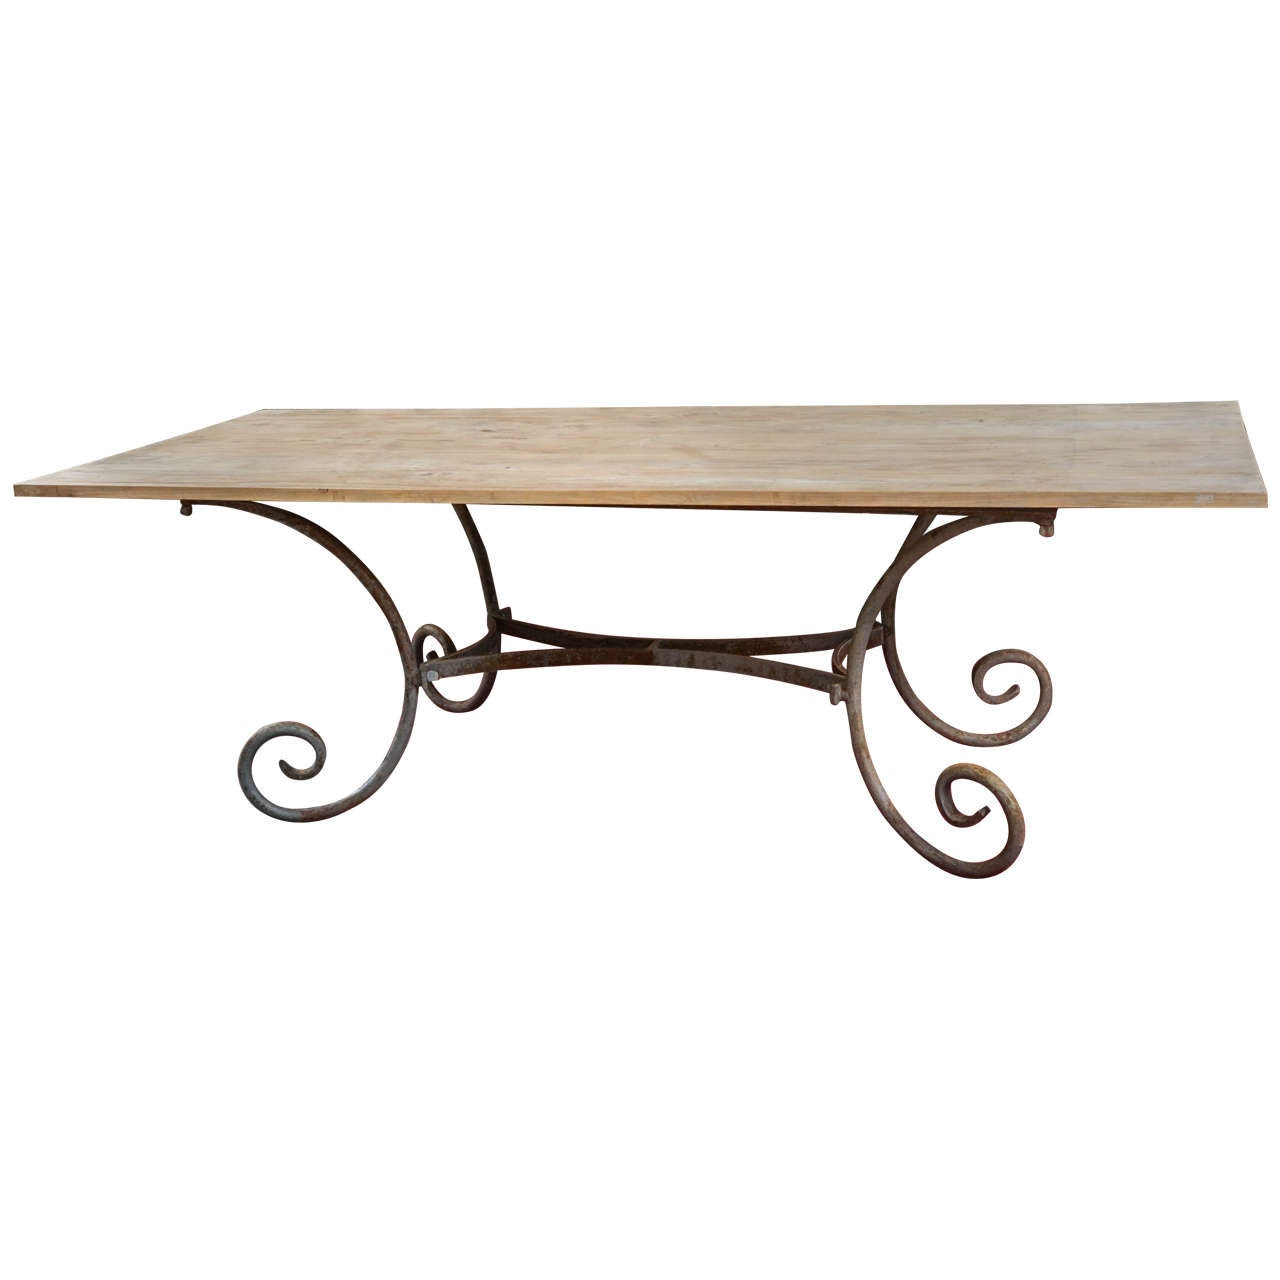 Indoor or outdoor french wrought iron table base teak top for Outdoor table bases wrought iron